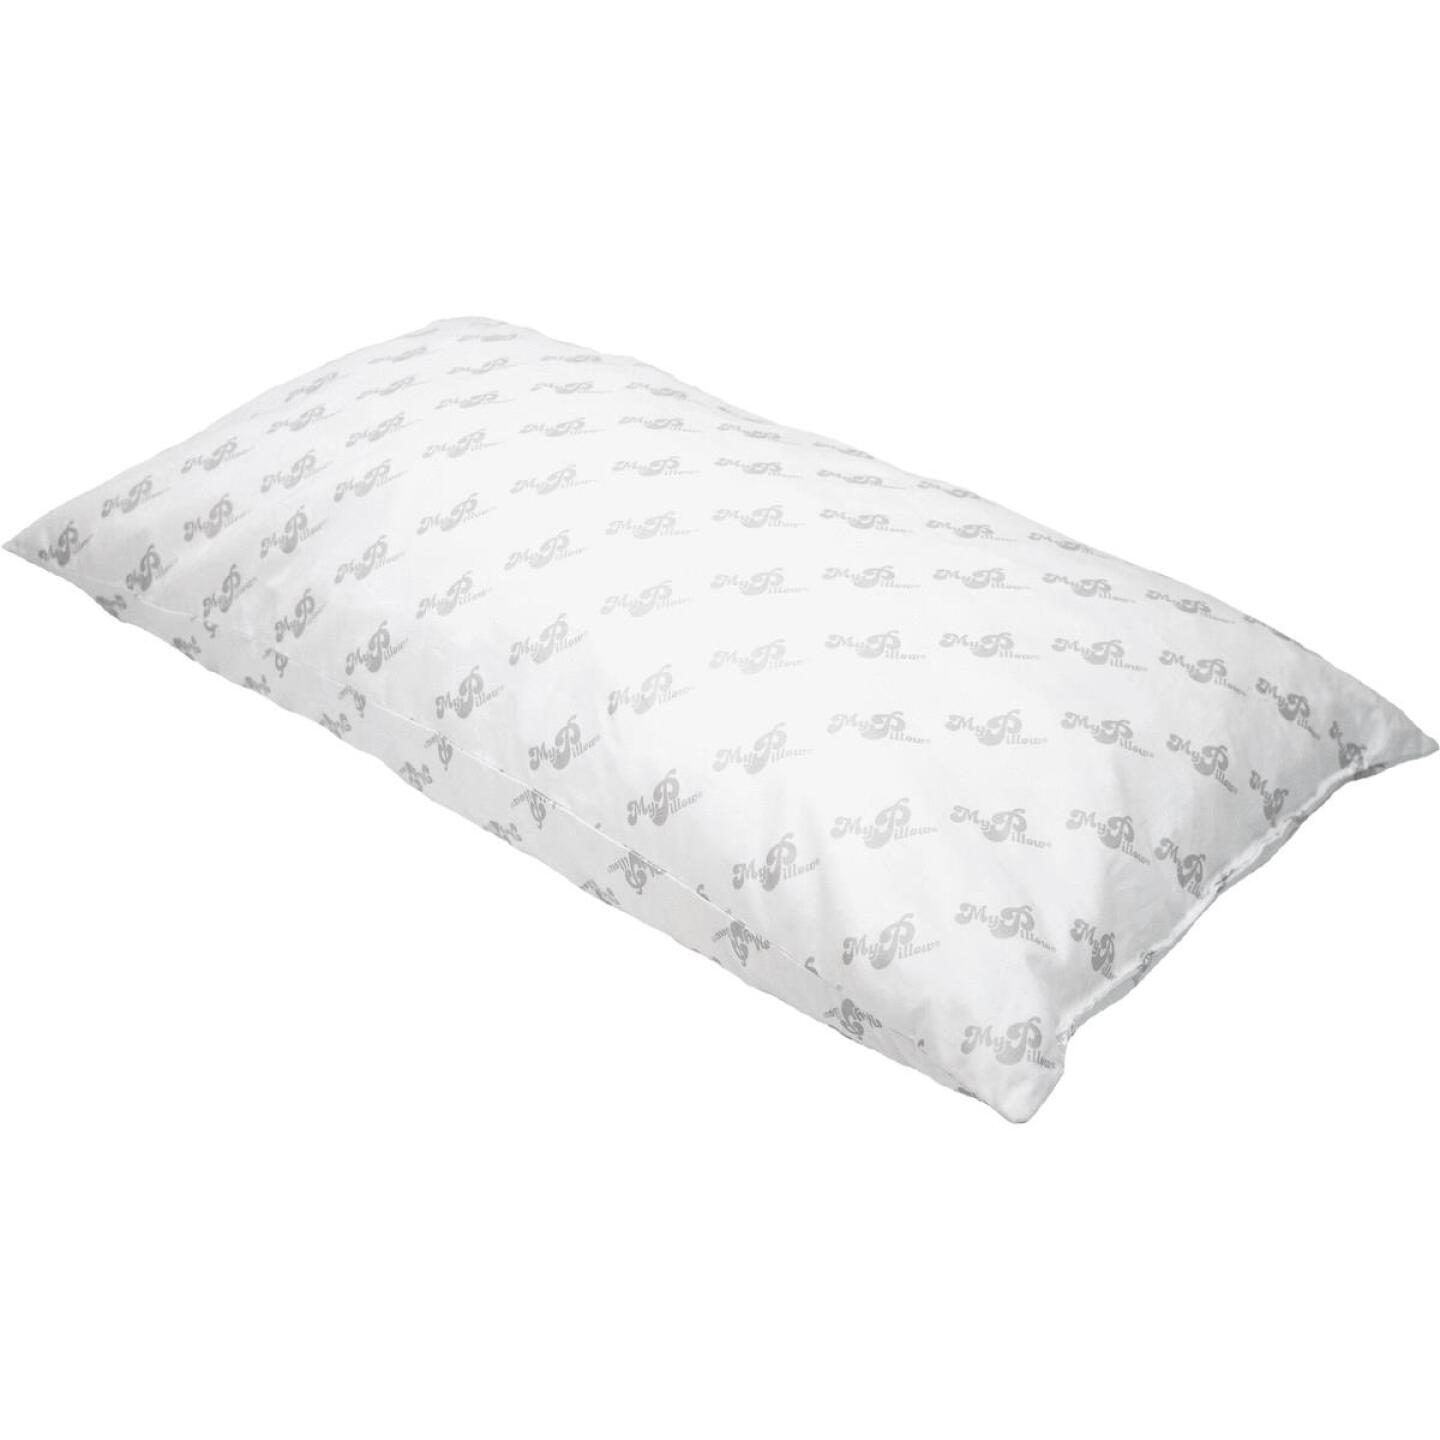 MyPillow Classic King Medium Fill Pillow Image 2